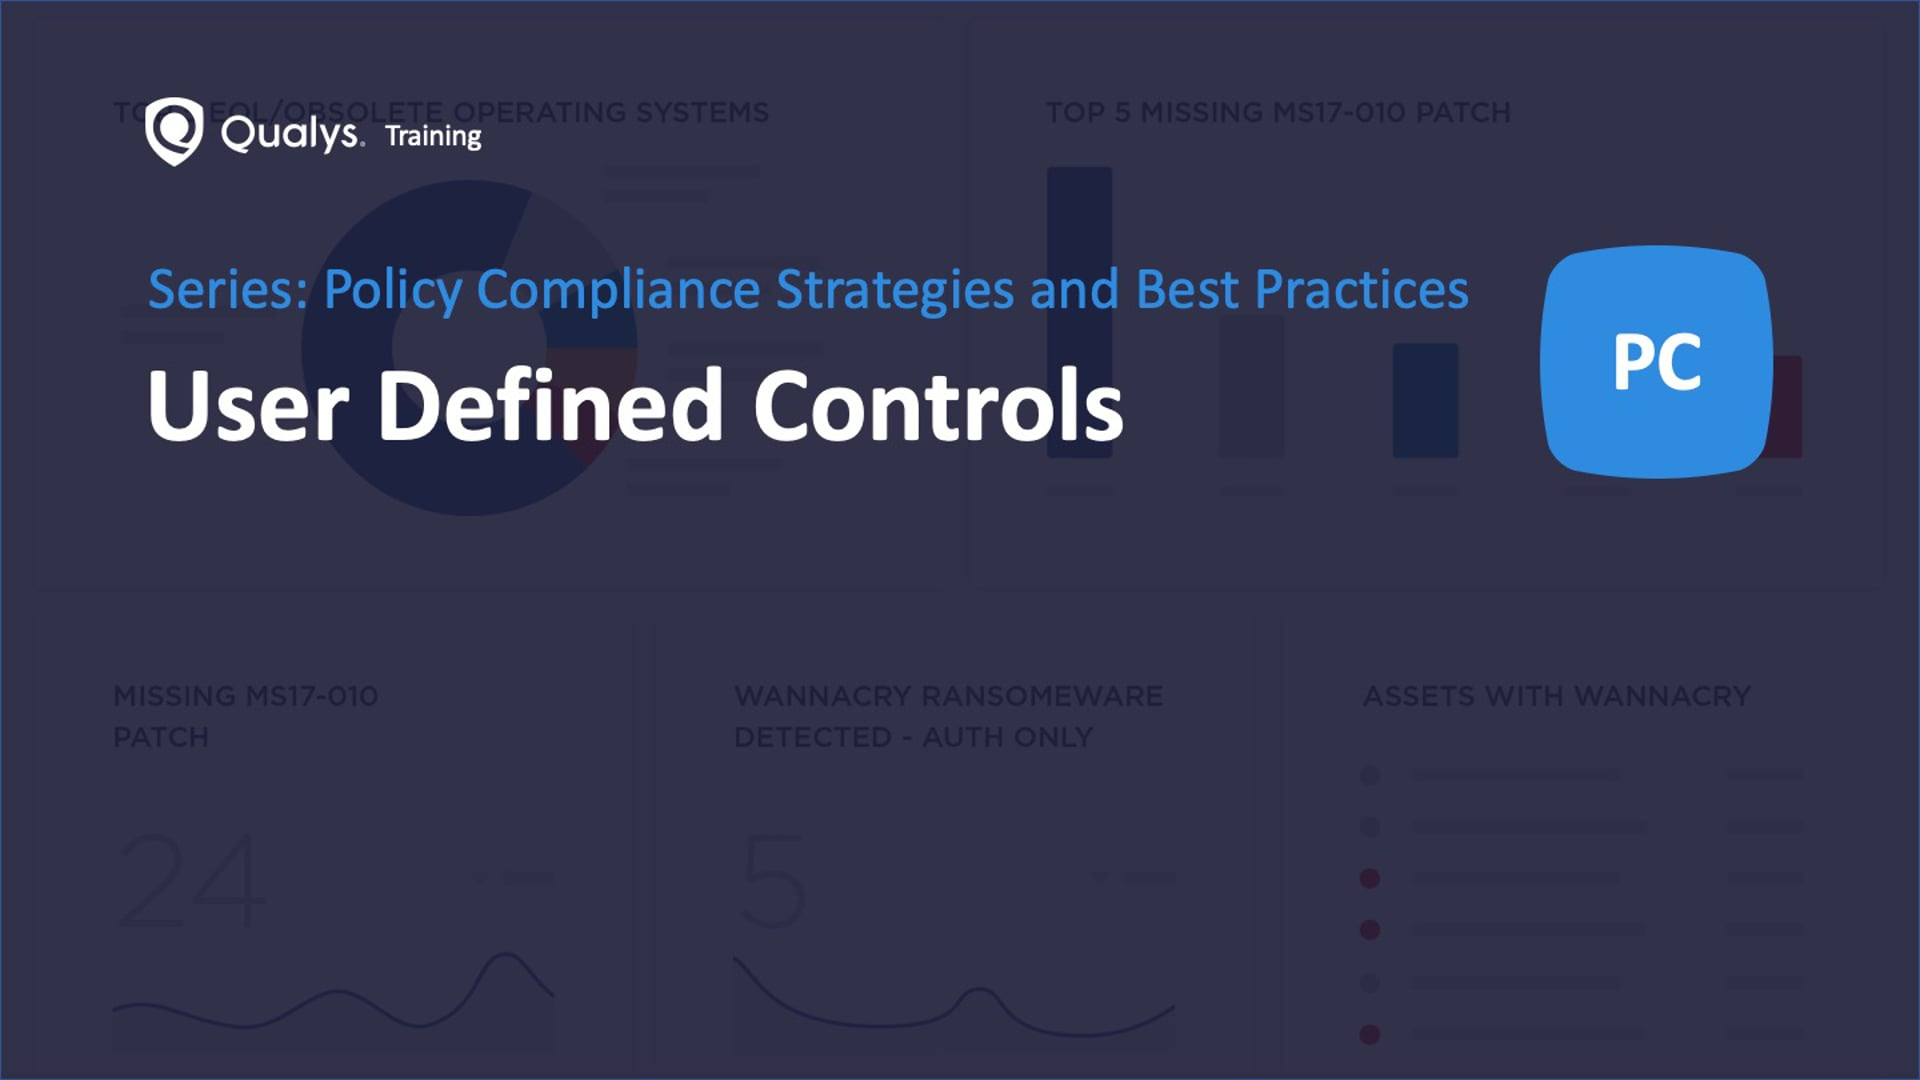 User Defined Controls